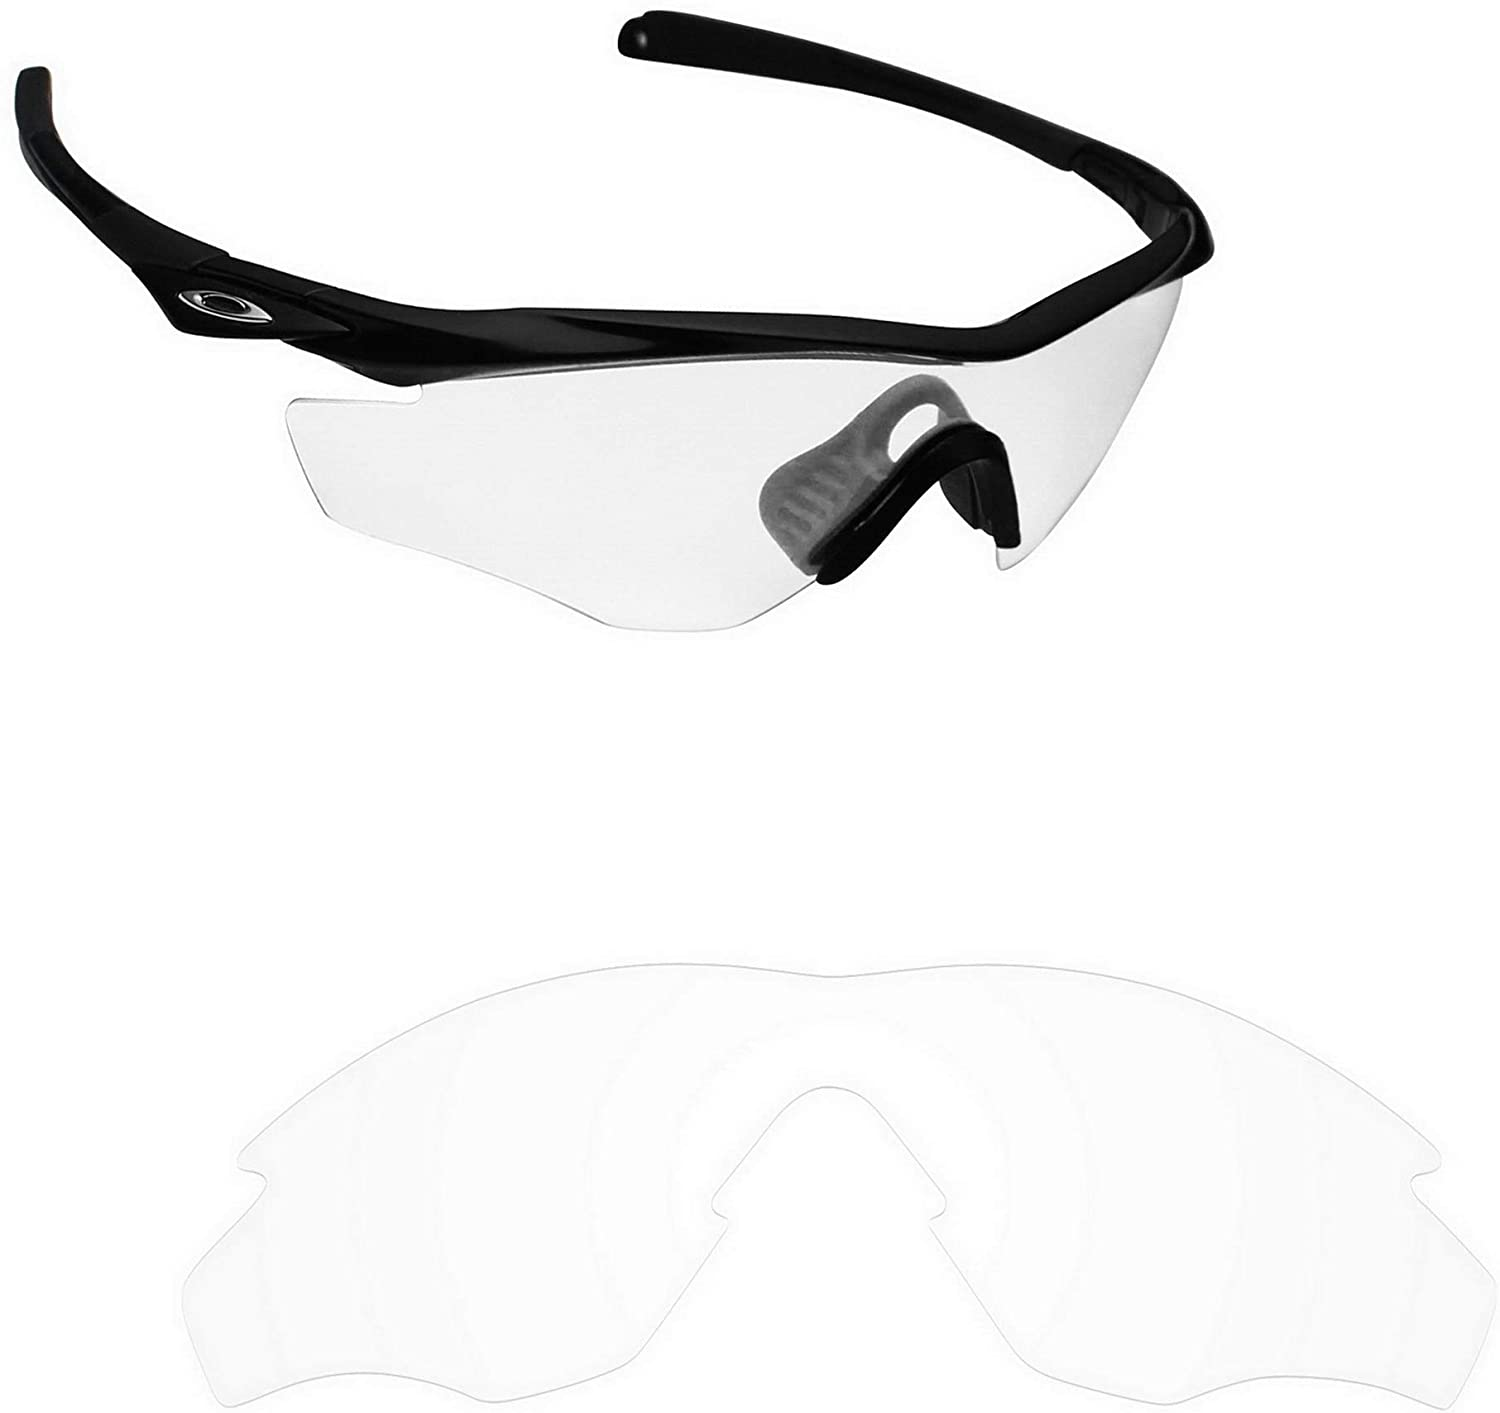 Alphax Polarized Replacement Lenses/Accessories for Oakley M2 Frame Asian Fit - Multiple Options